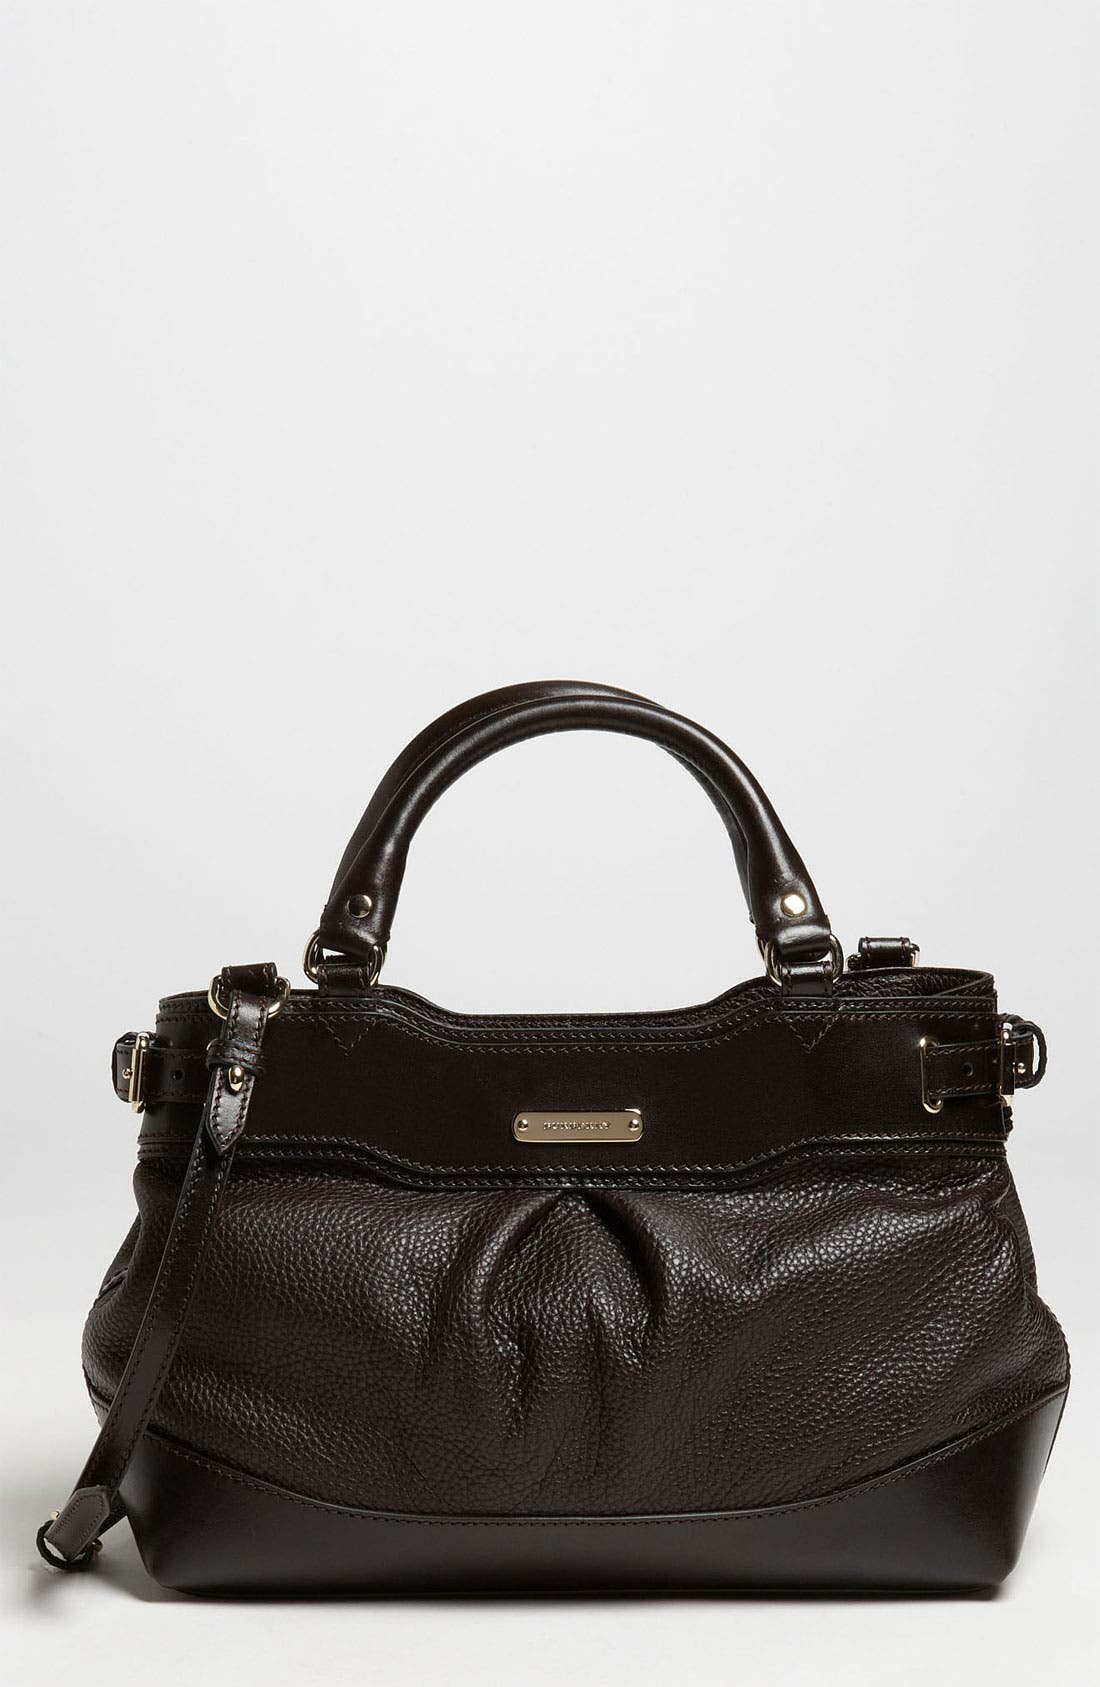 Main Image - Burberry 'London Grainy' Leather Tote